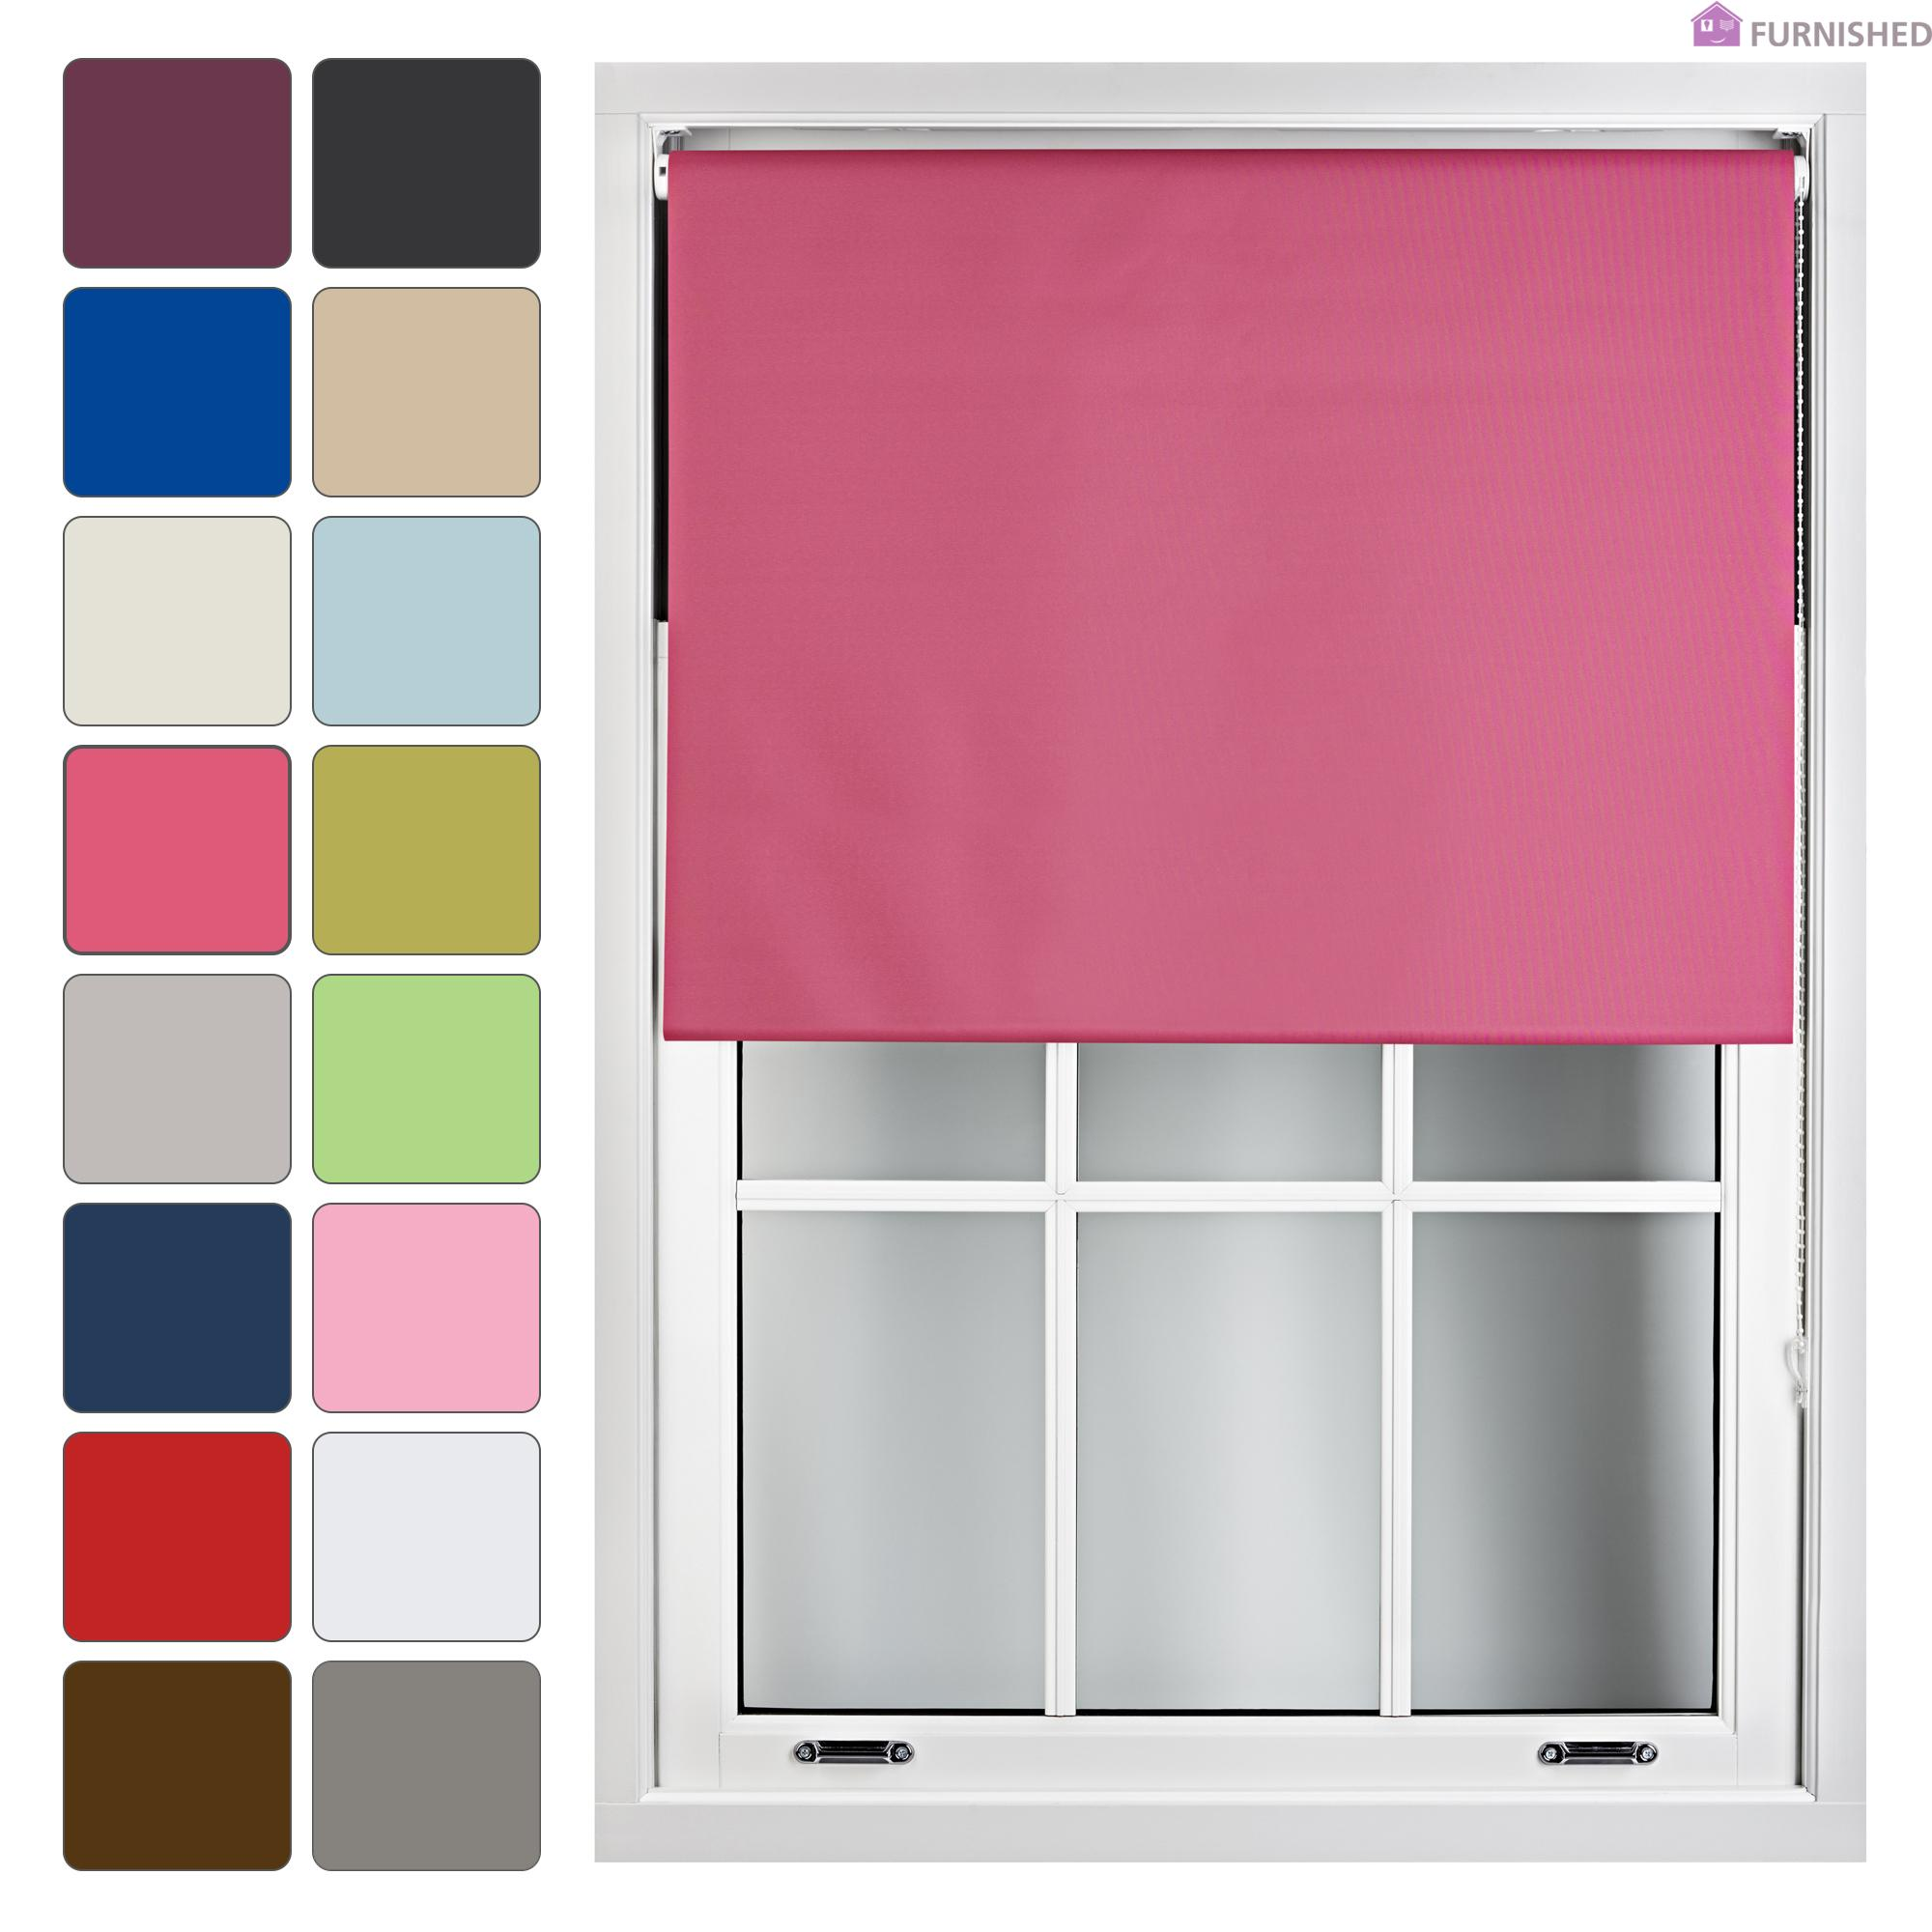 Quality-Blackout-Roller-Blinds-Window-Thermal-Blind-Made-to-Measure-by-Furnished